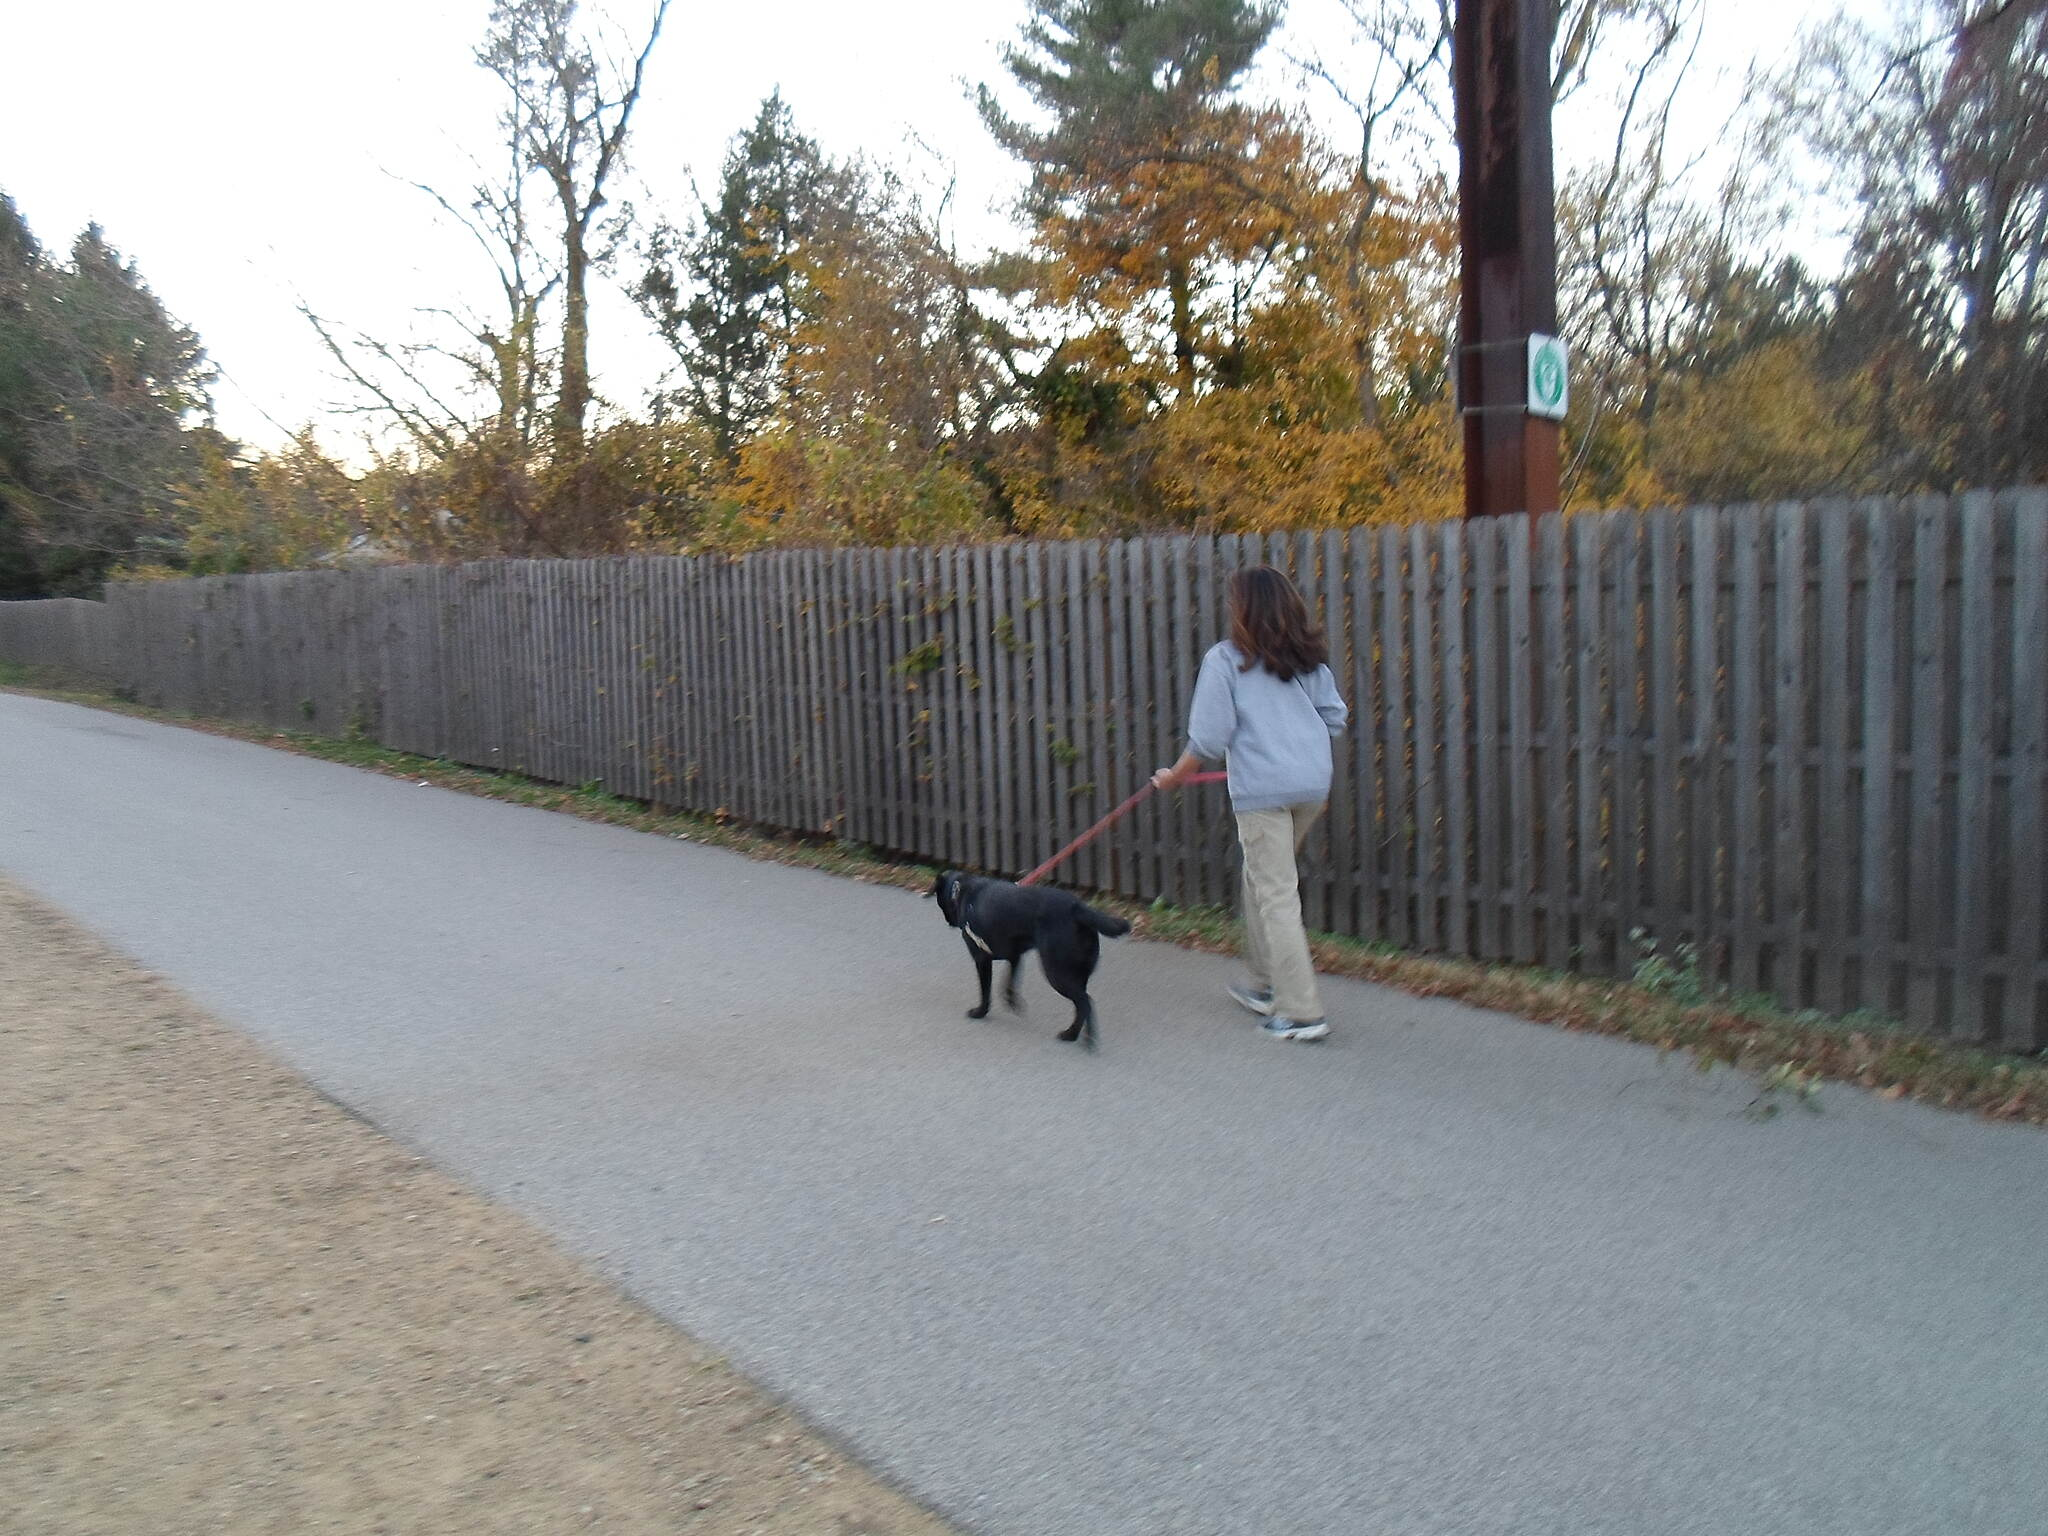 Cynwyd Heritage Trail Cynwyd Heritage Trail Woman and her dog enjoying a stroll near Lower Merion Township Park on a warm autumn evening. Taken Nov. 2015.